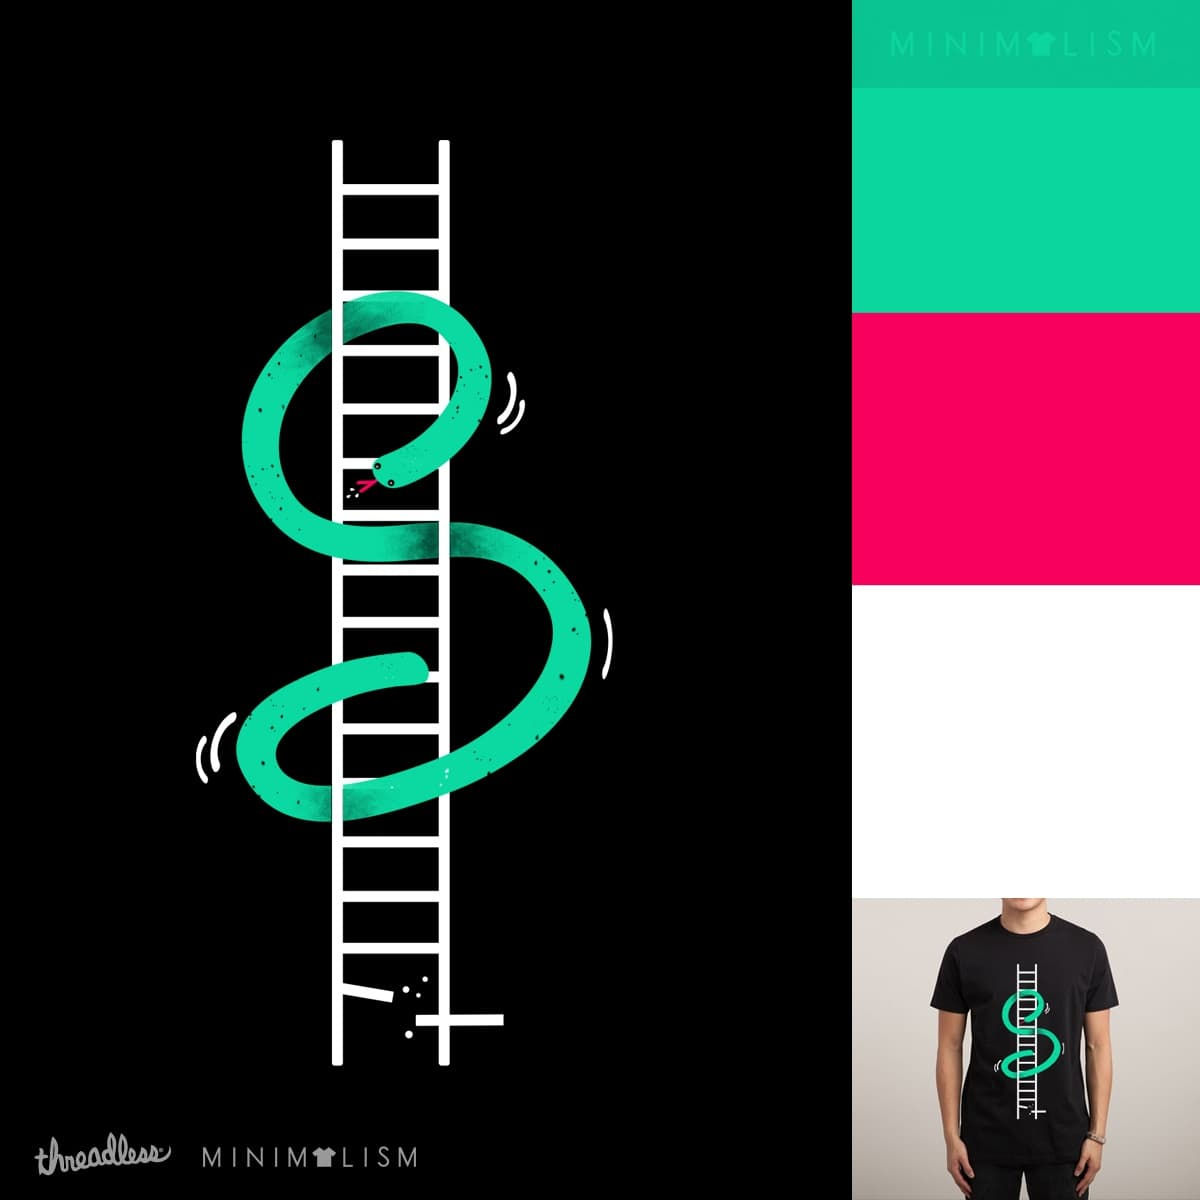 S&L by anwarrafiee on Threadless